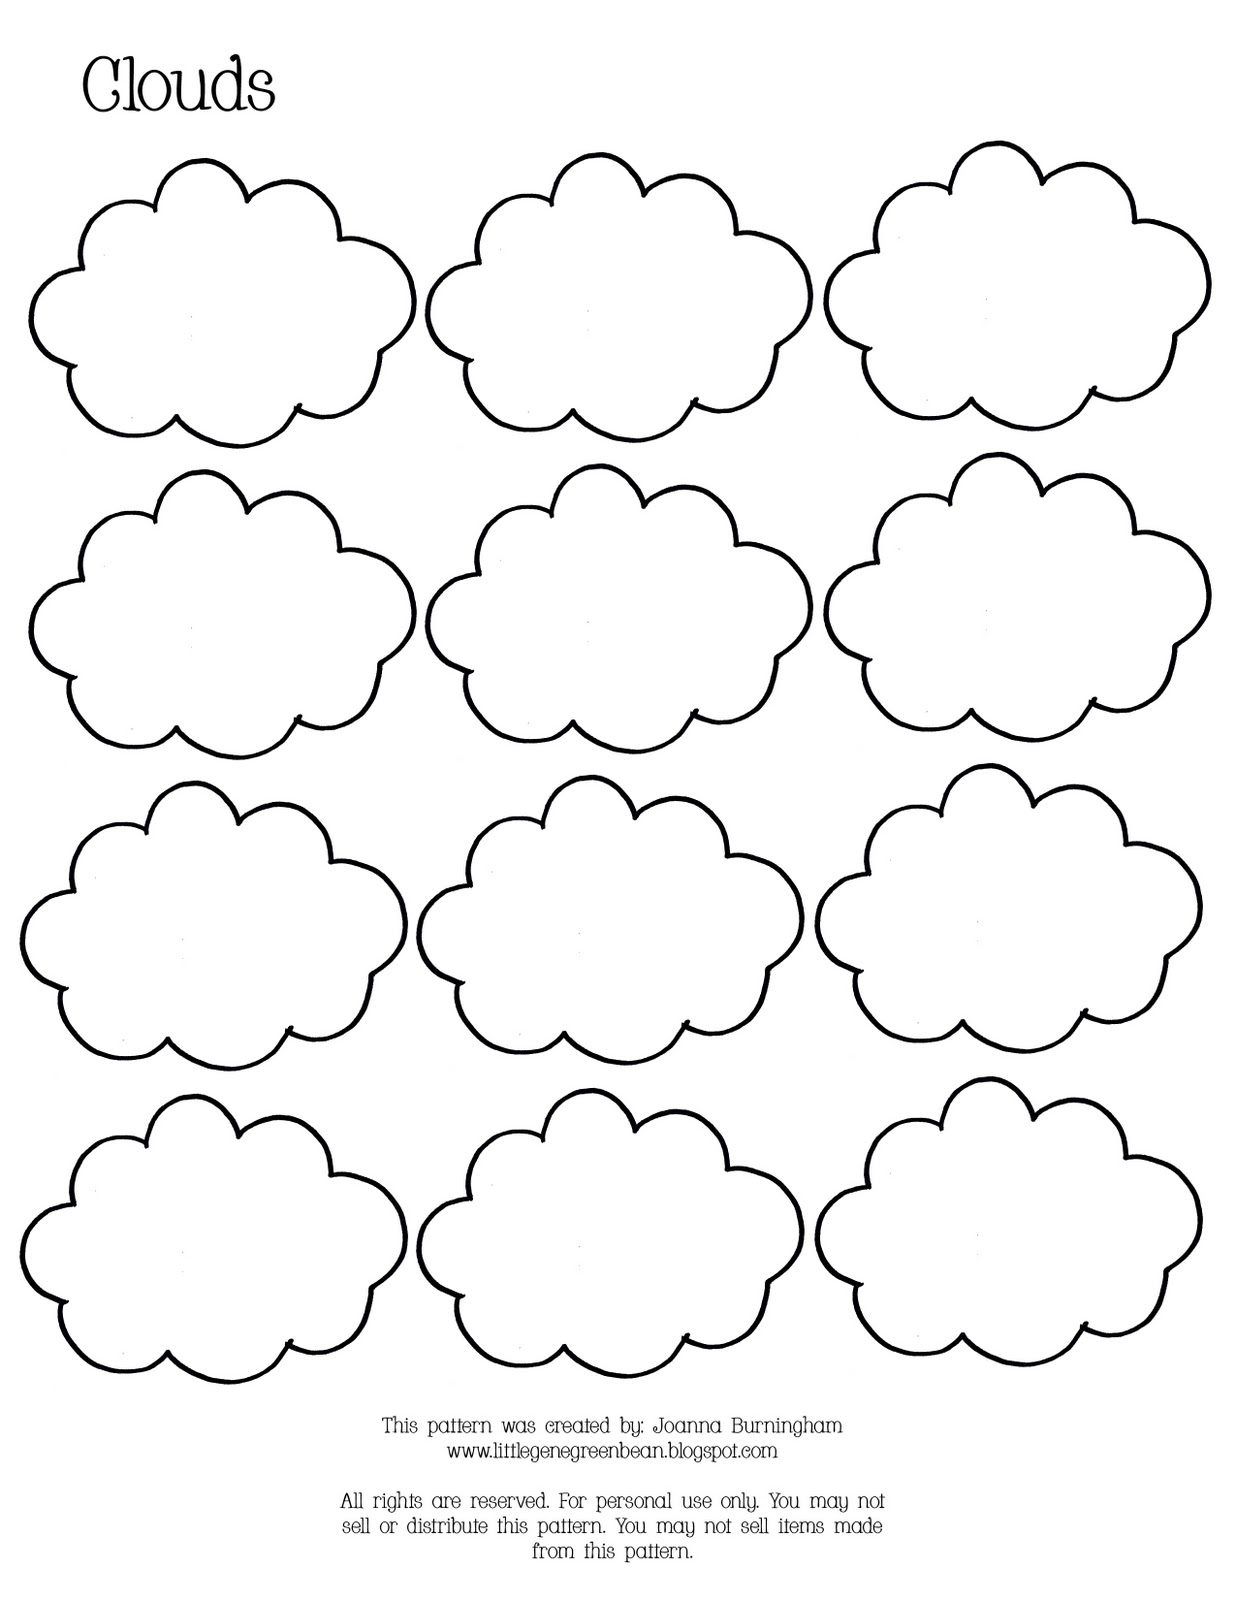 Little Gene Green Bean Rain and Clouds Unit 4 – Clouds Worksheet